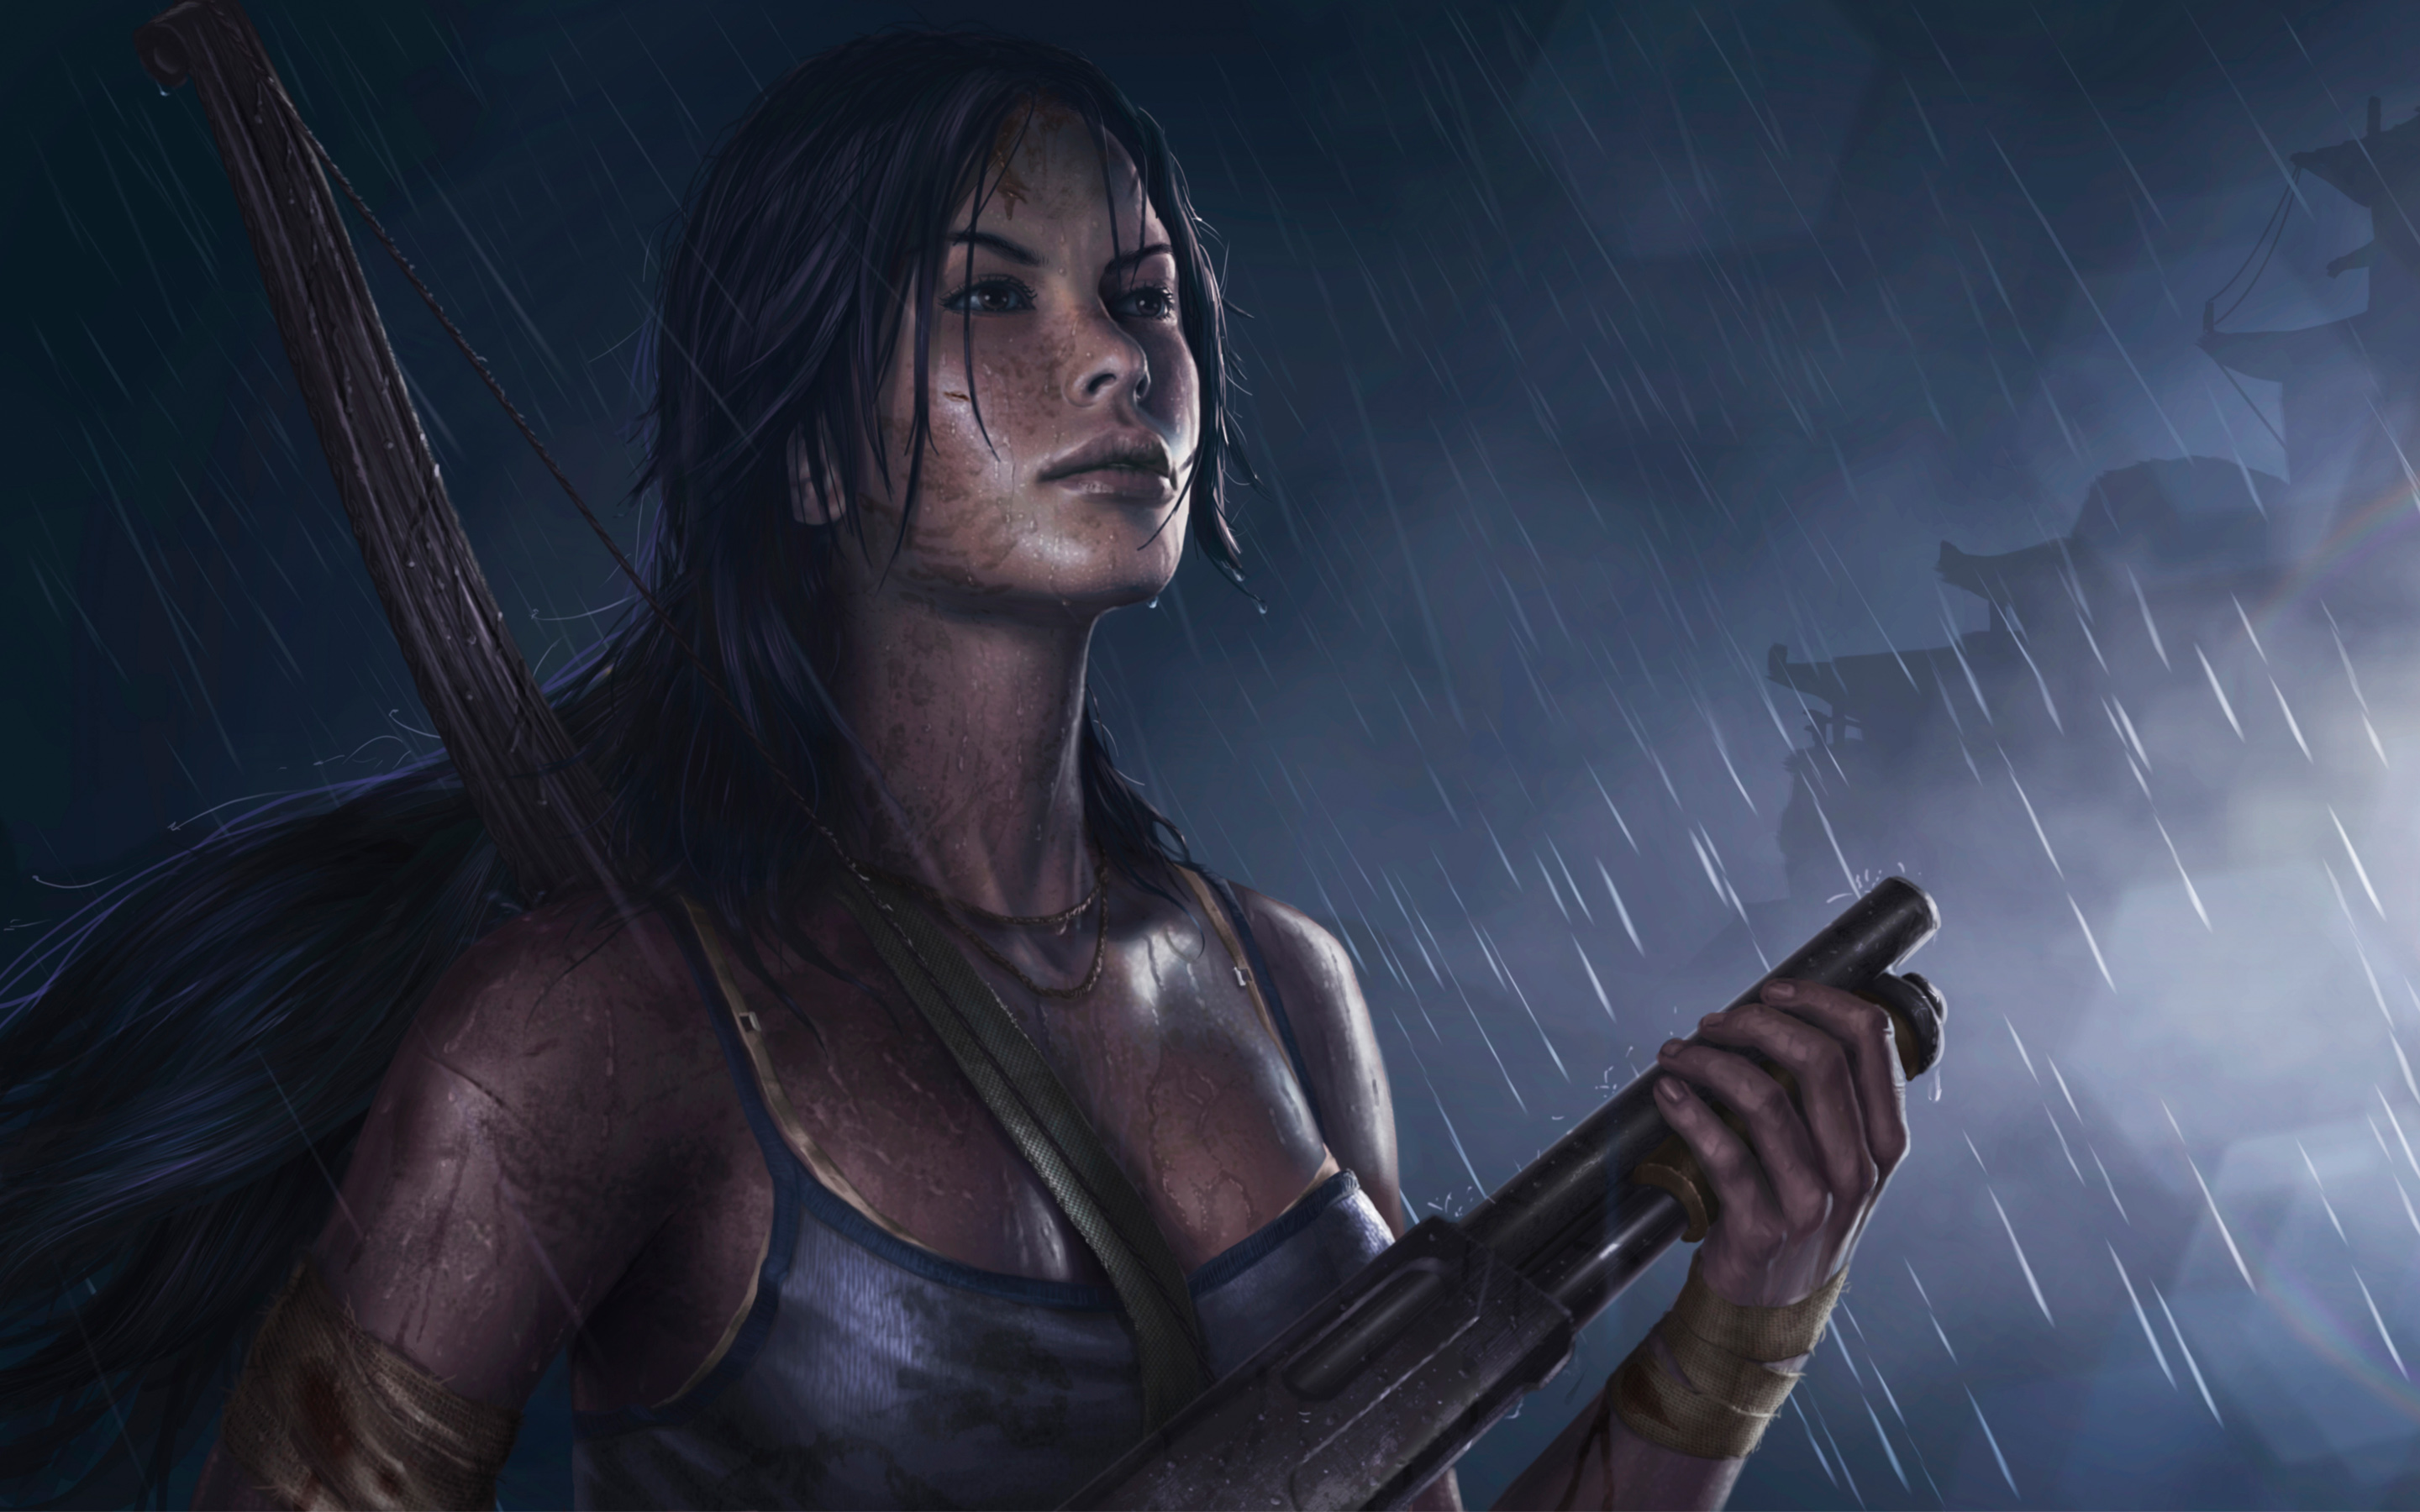 Free Download Tomb Raider Reborn Art Wallpapers Hd Wallpapers